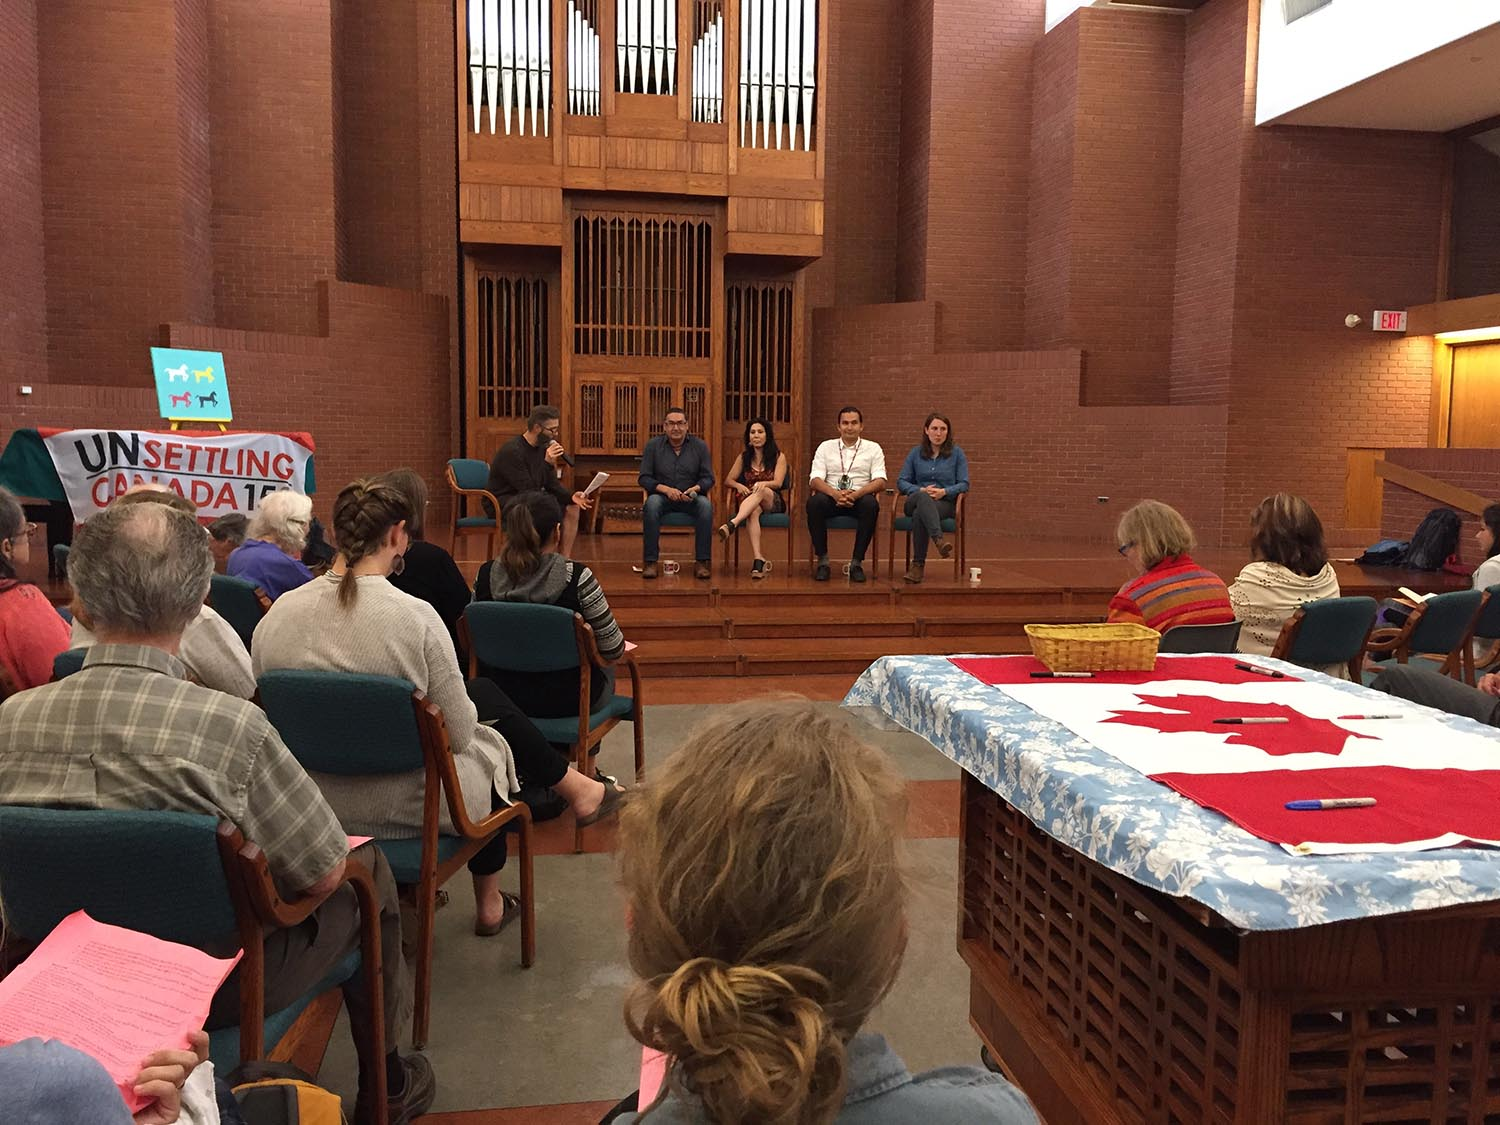 """The """"Walk the Talk"""" teaching held this past June at Hope Mennonite Church. The host was Steve Heinrichs (left). The guests (from left to right): Romeo Saganash, Leah Gazan, Wab Kinew, and Kathleen Vitt."""